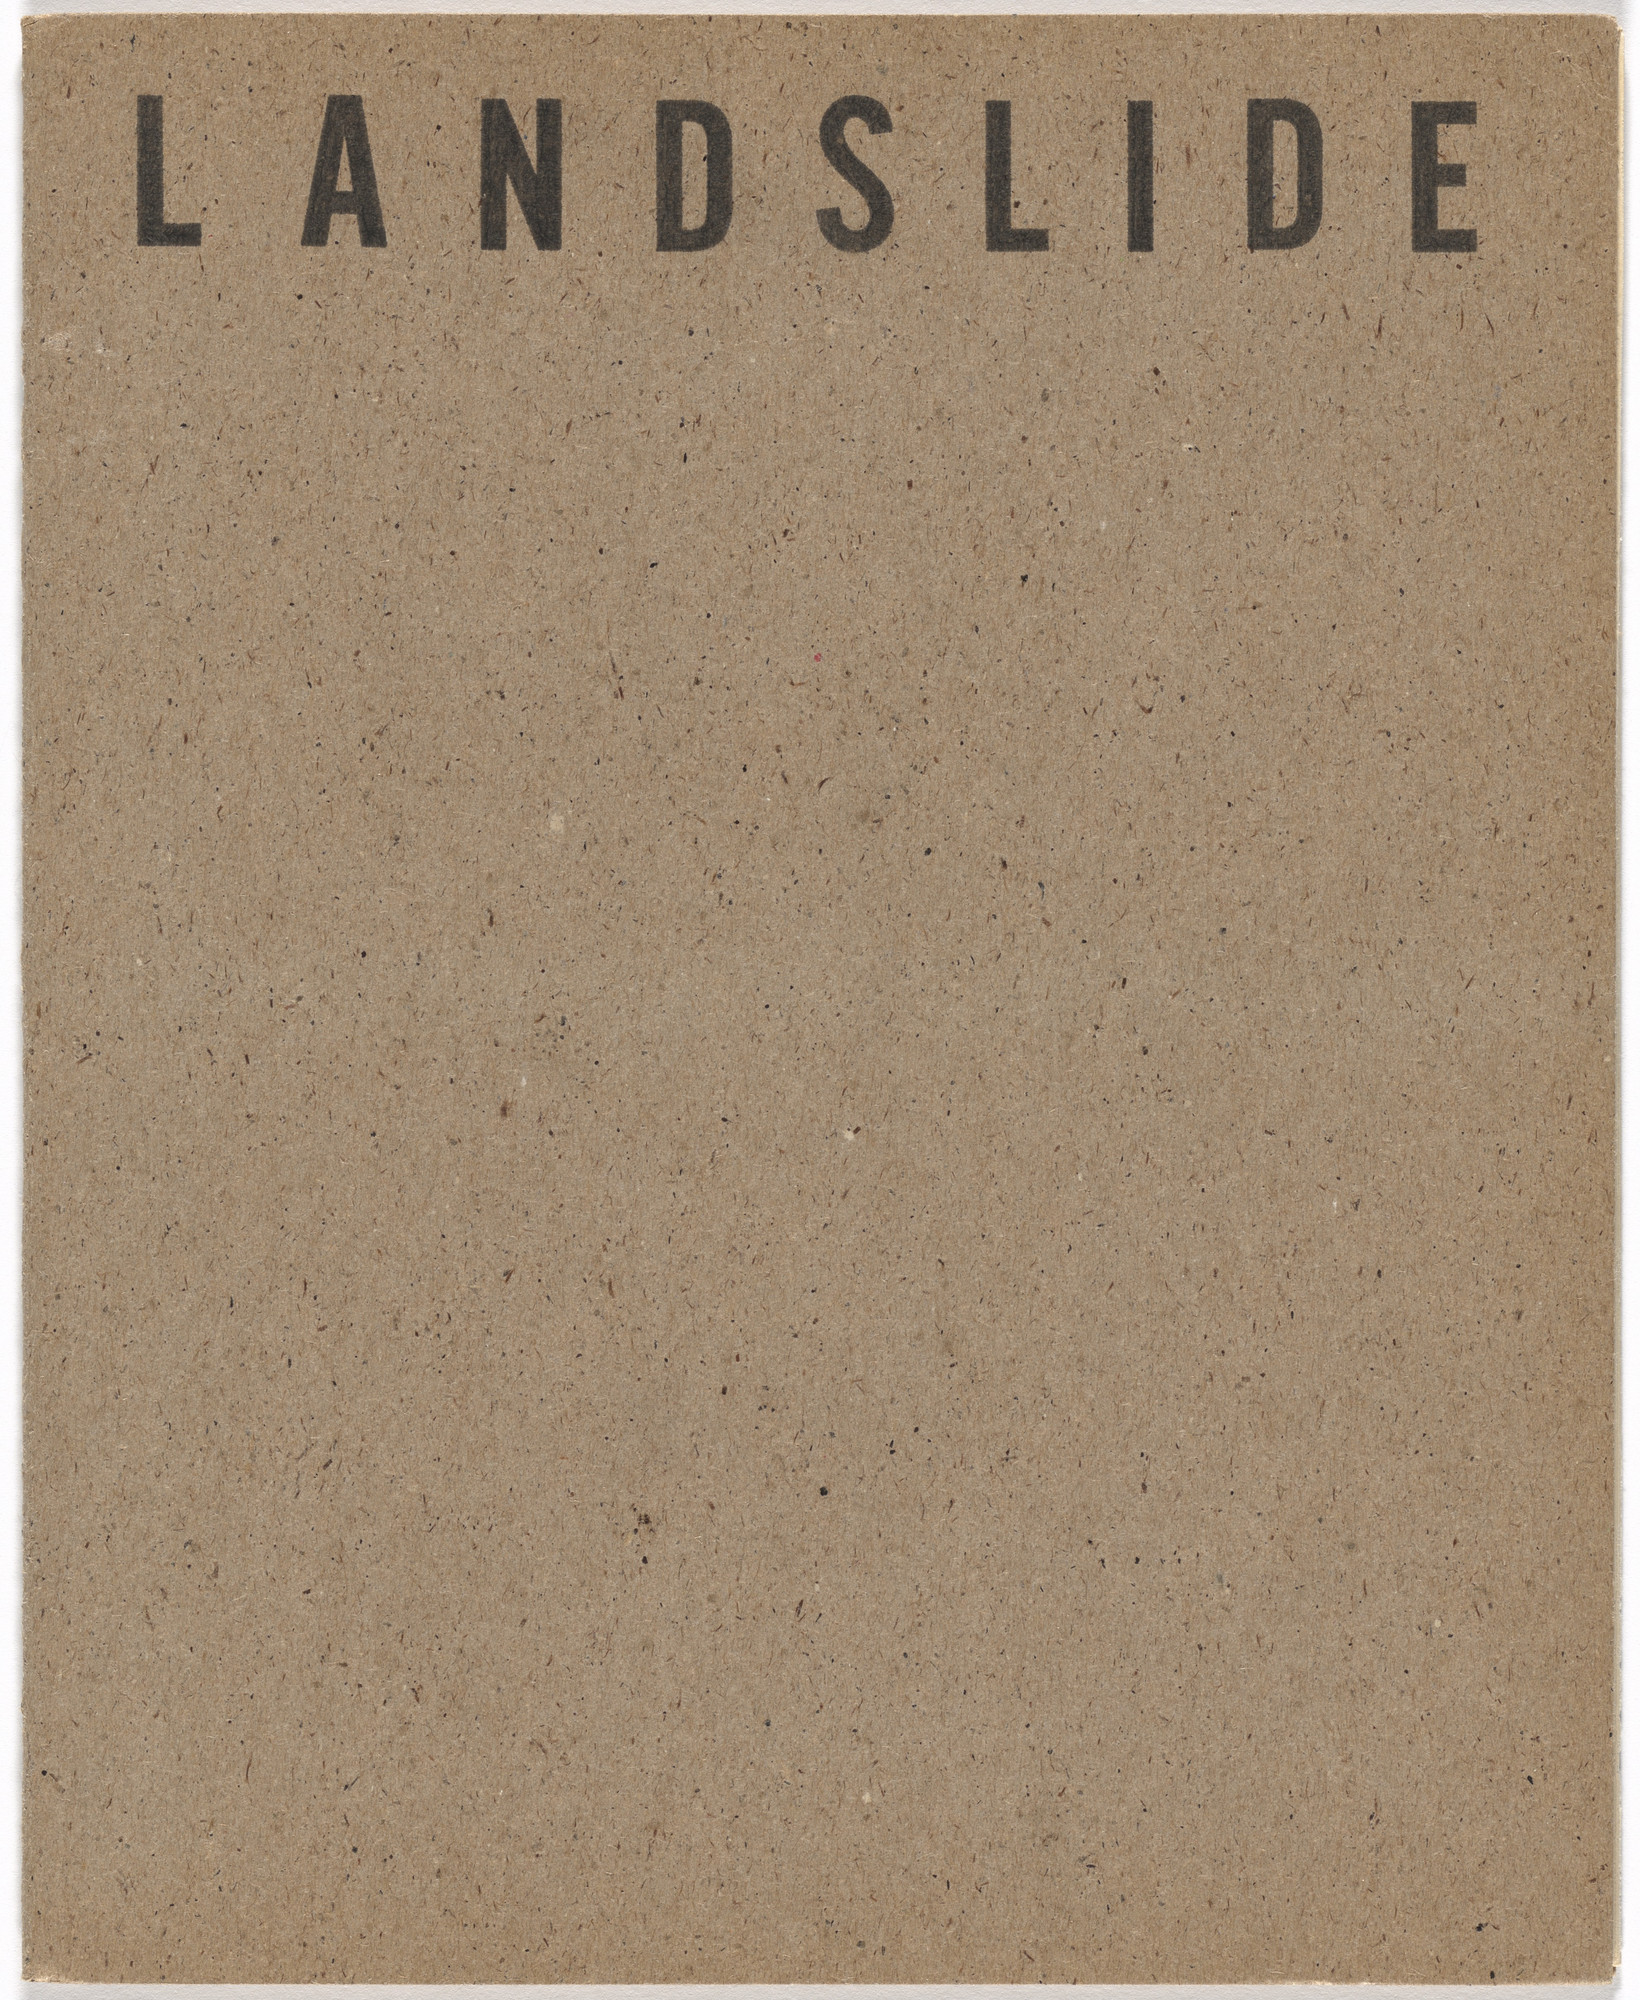 William Leavitt, Bas Jan Ader. Landslide, no. 4. 1969